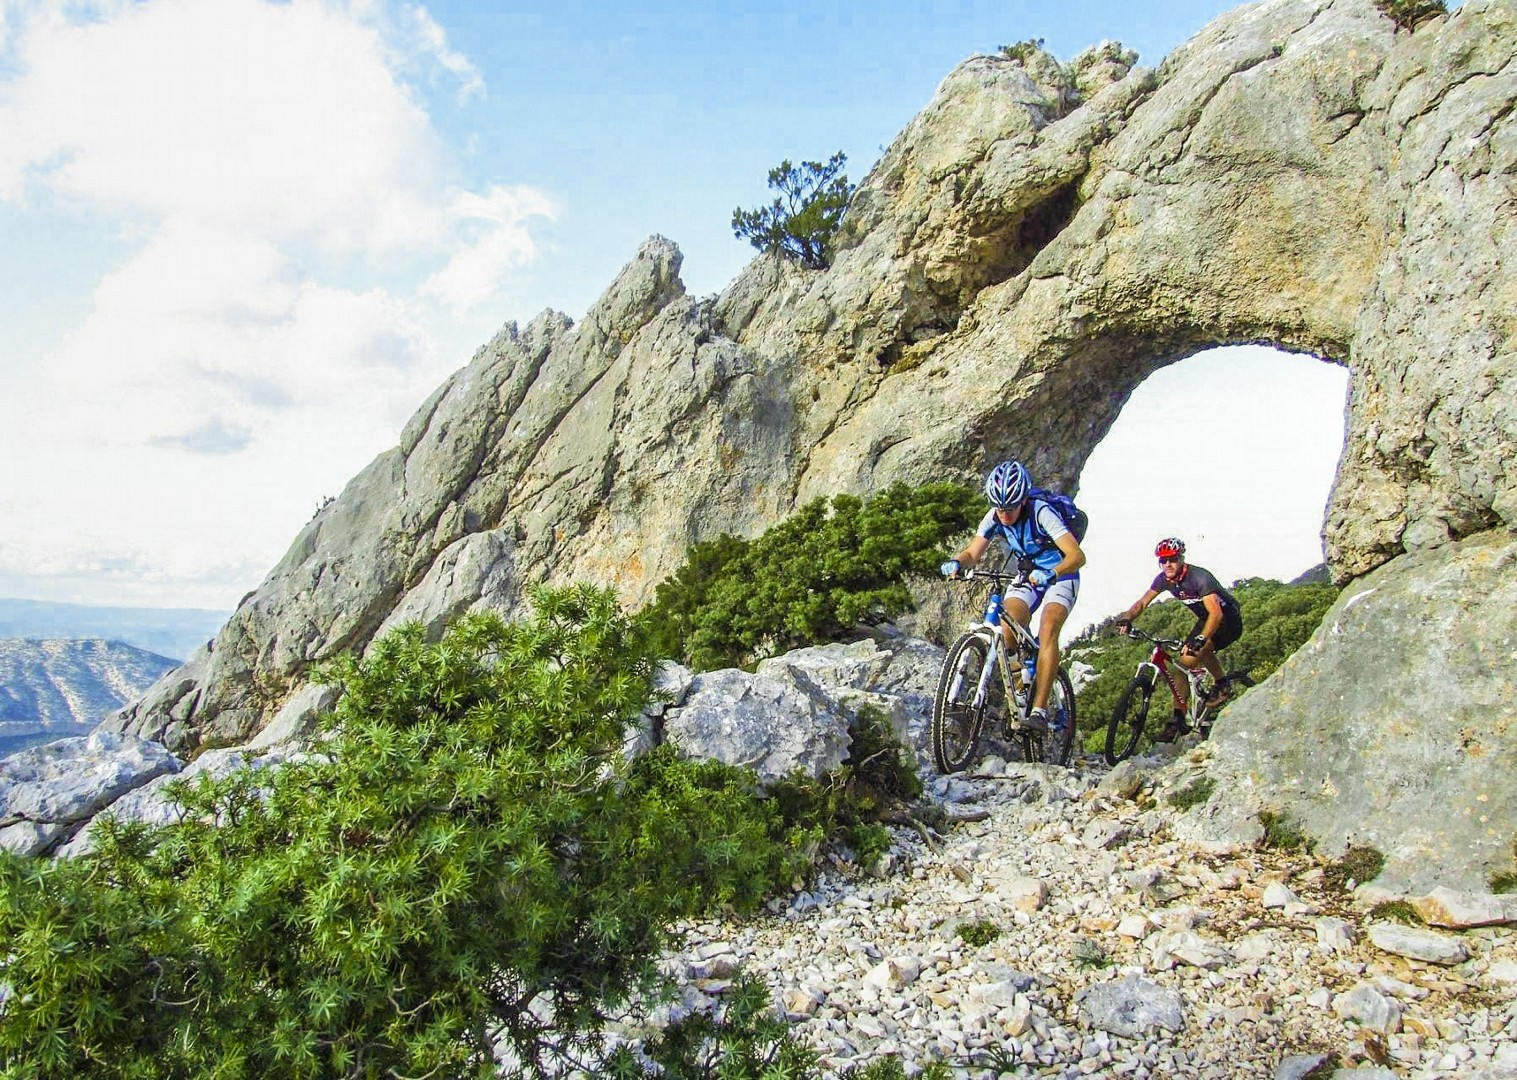 mountain-biking-in-sardinia-italy-saddle-skeaddle-self-guided.jpg - Italy - Sardinia - Coast to Coast - Self-Guided Mountain Bike Holiday - Mountain Biking